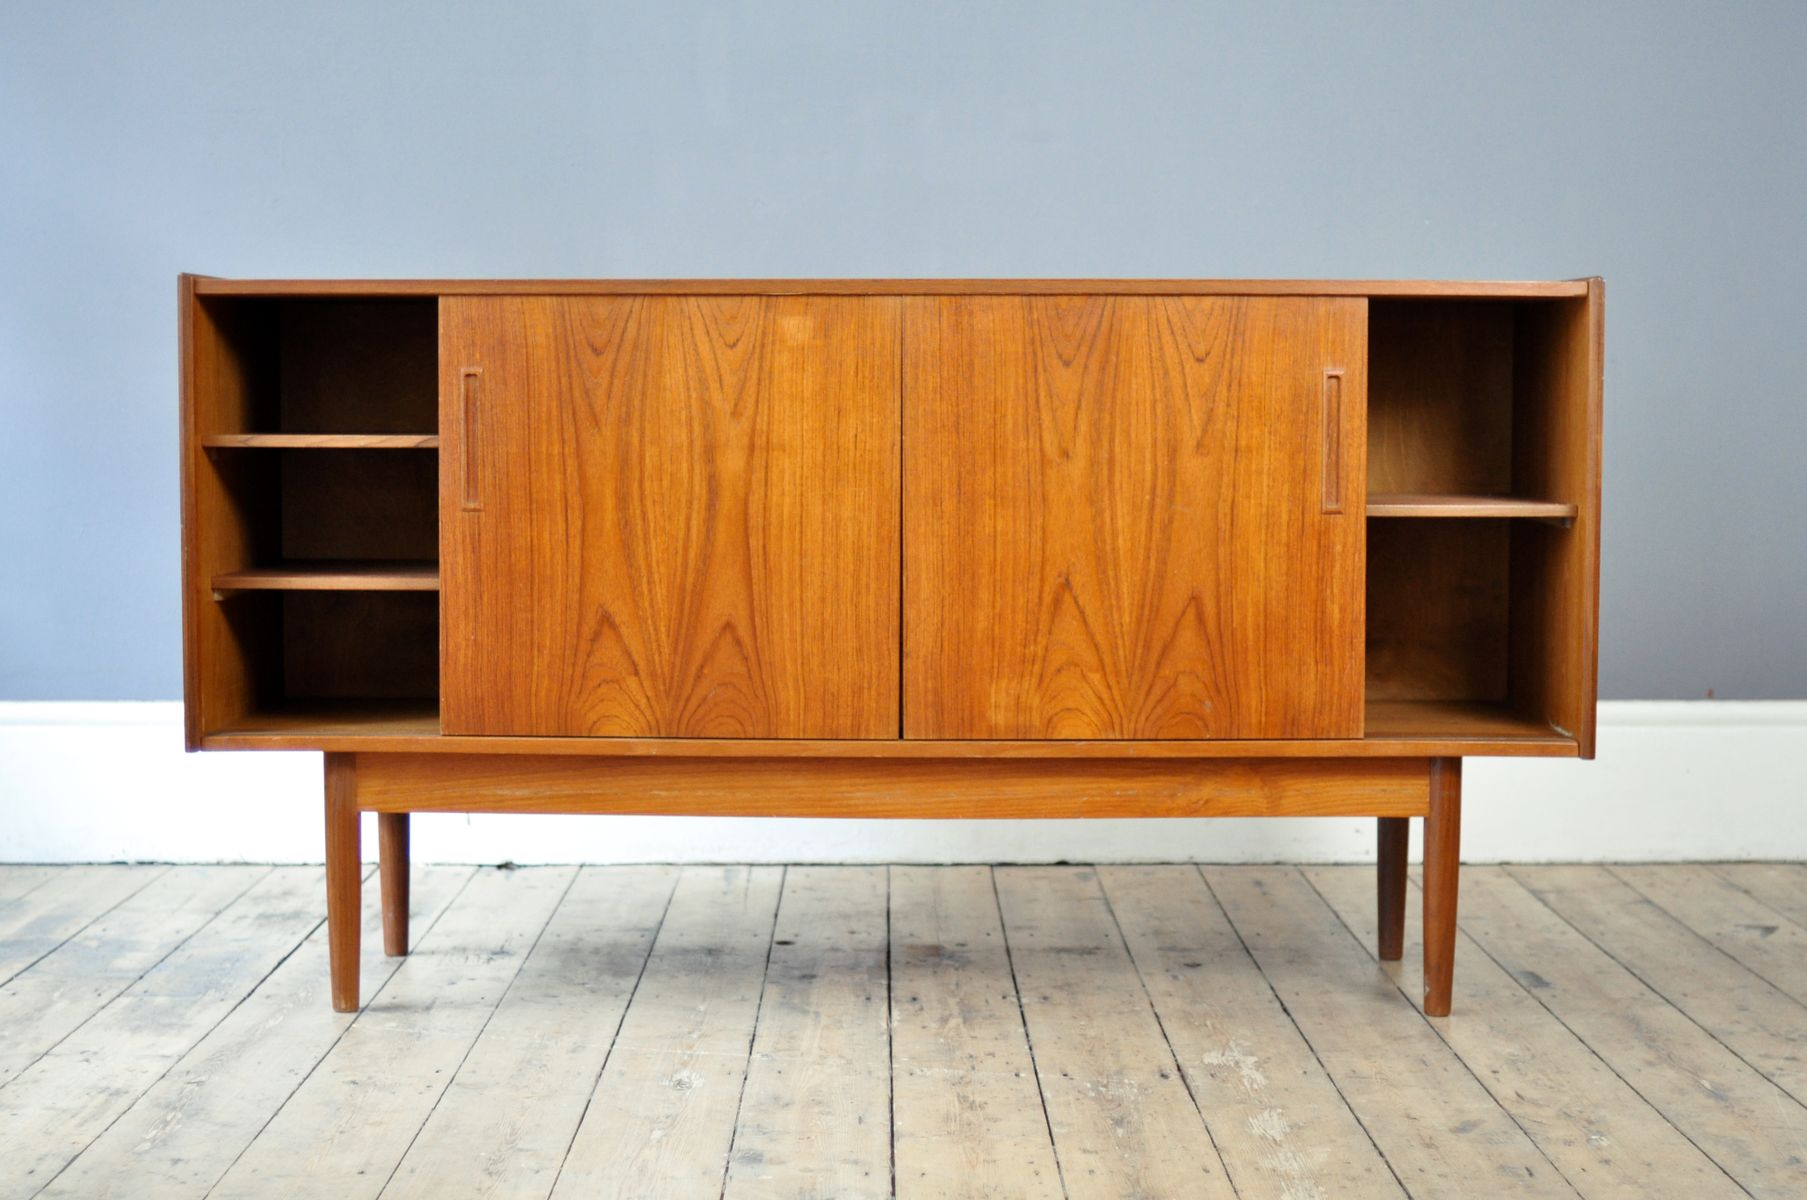 d nisches mid century teak sideboard mit schiebet ren bei pamono kaufen. Black Bedroom Furniture Sets. Home Design Ideas